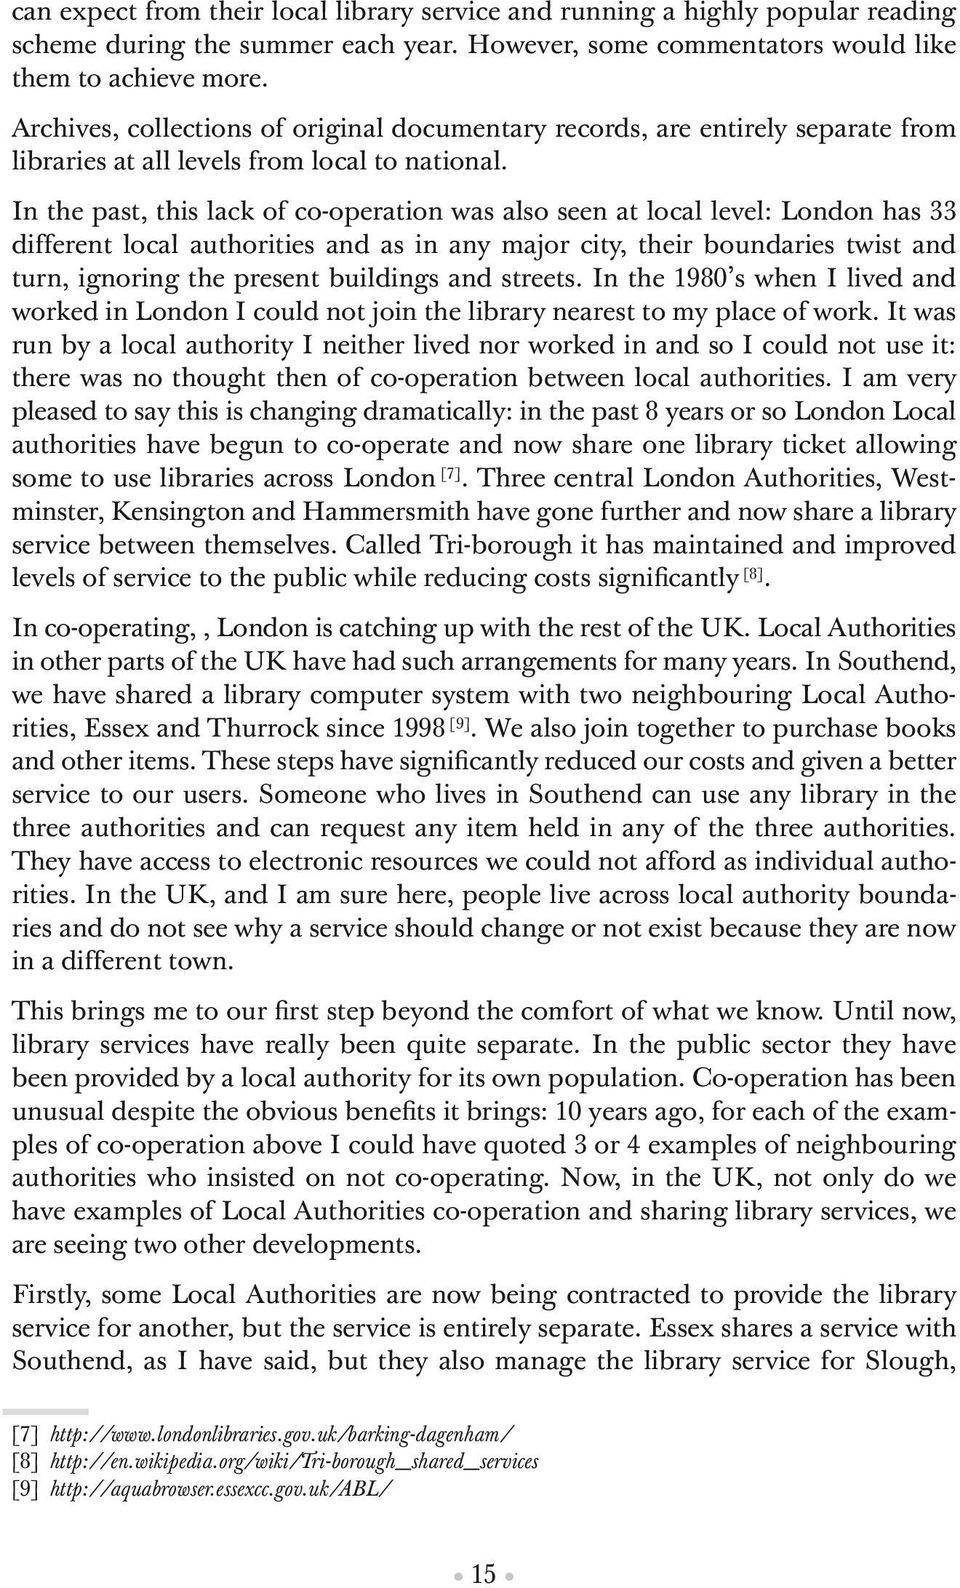 In the past, this lack of co-operation was also seen at local level: London has 33 different local authorities and as in any major city, their boundaries twist and turn, ignoring the present